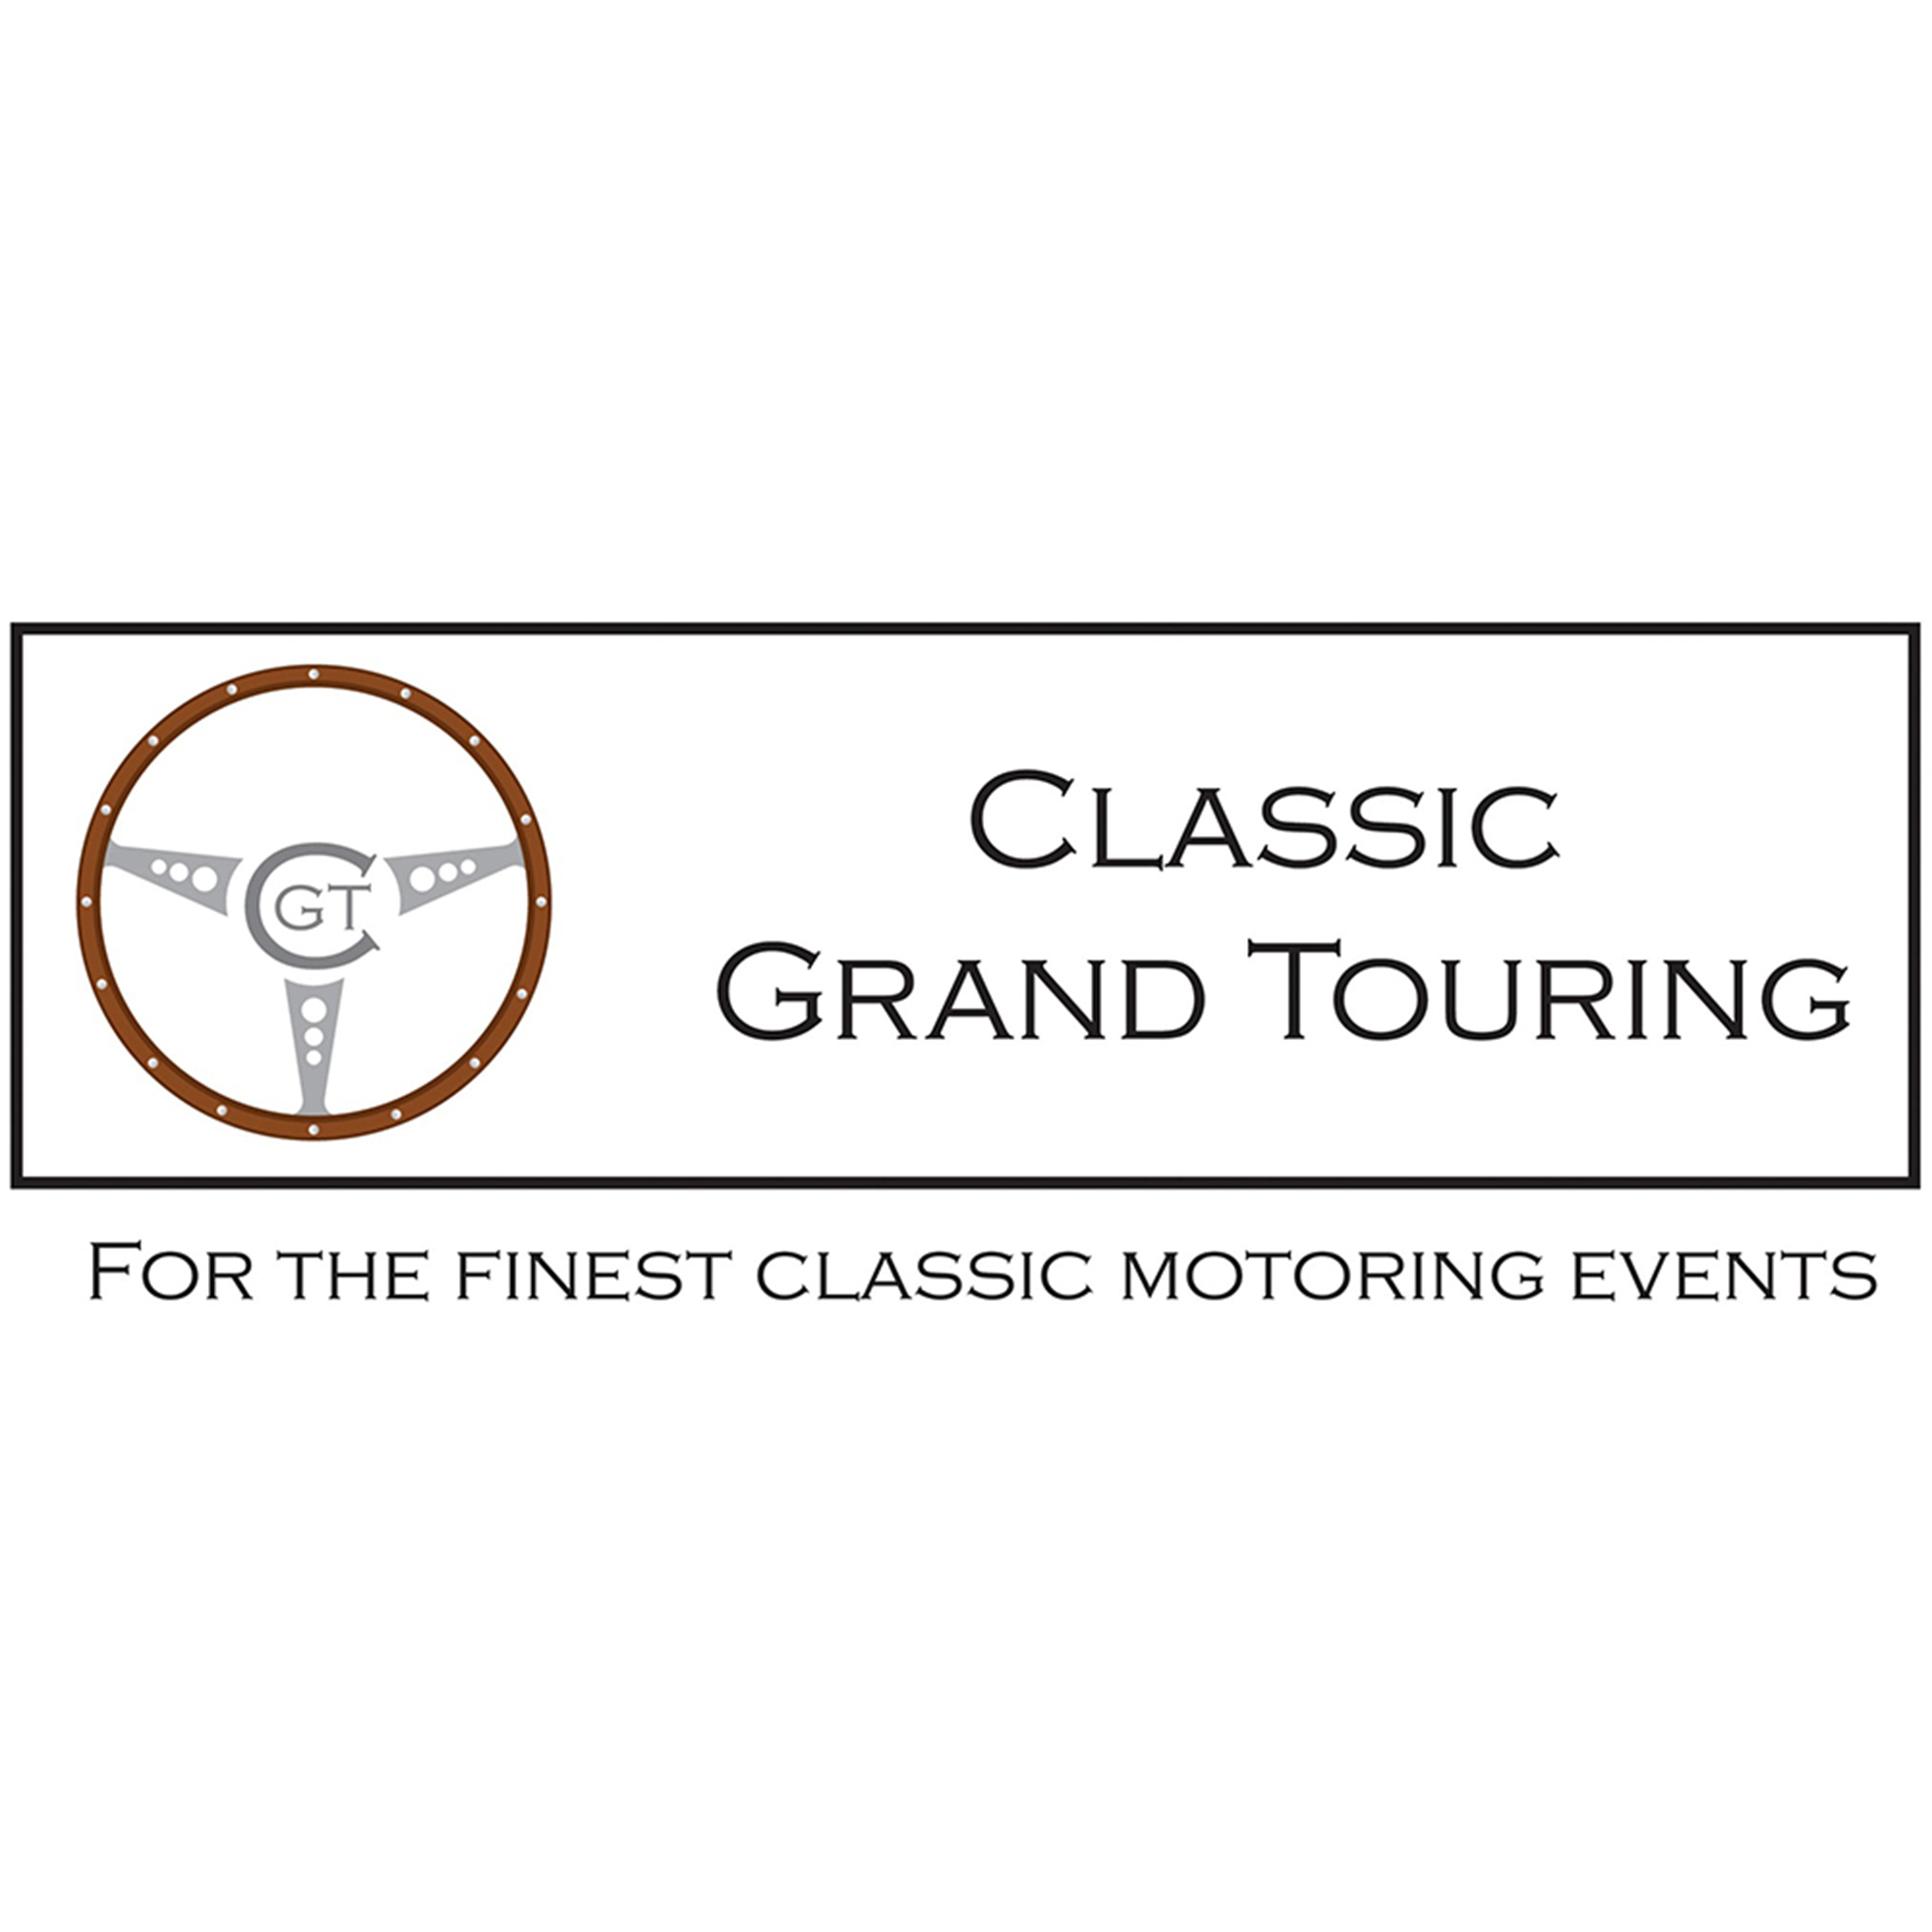 Classic Grand touring